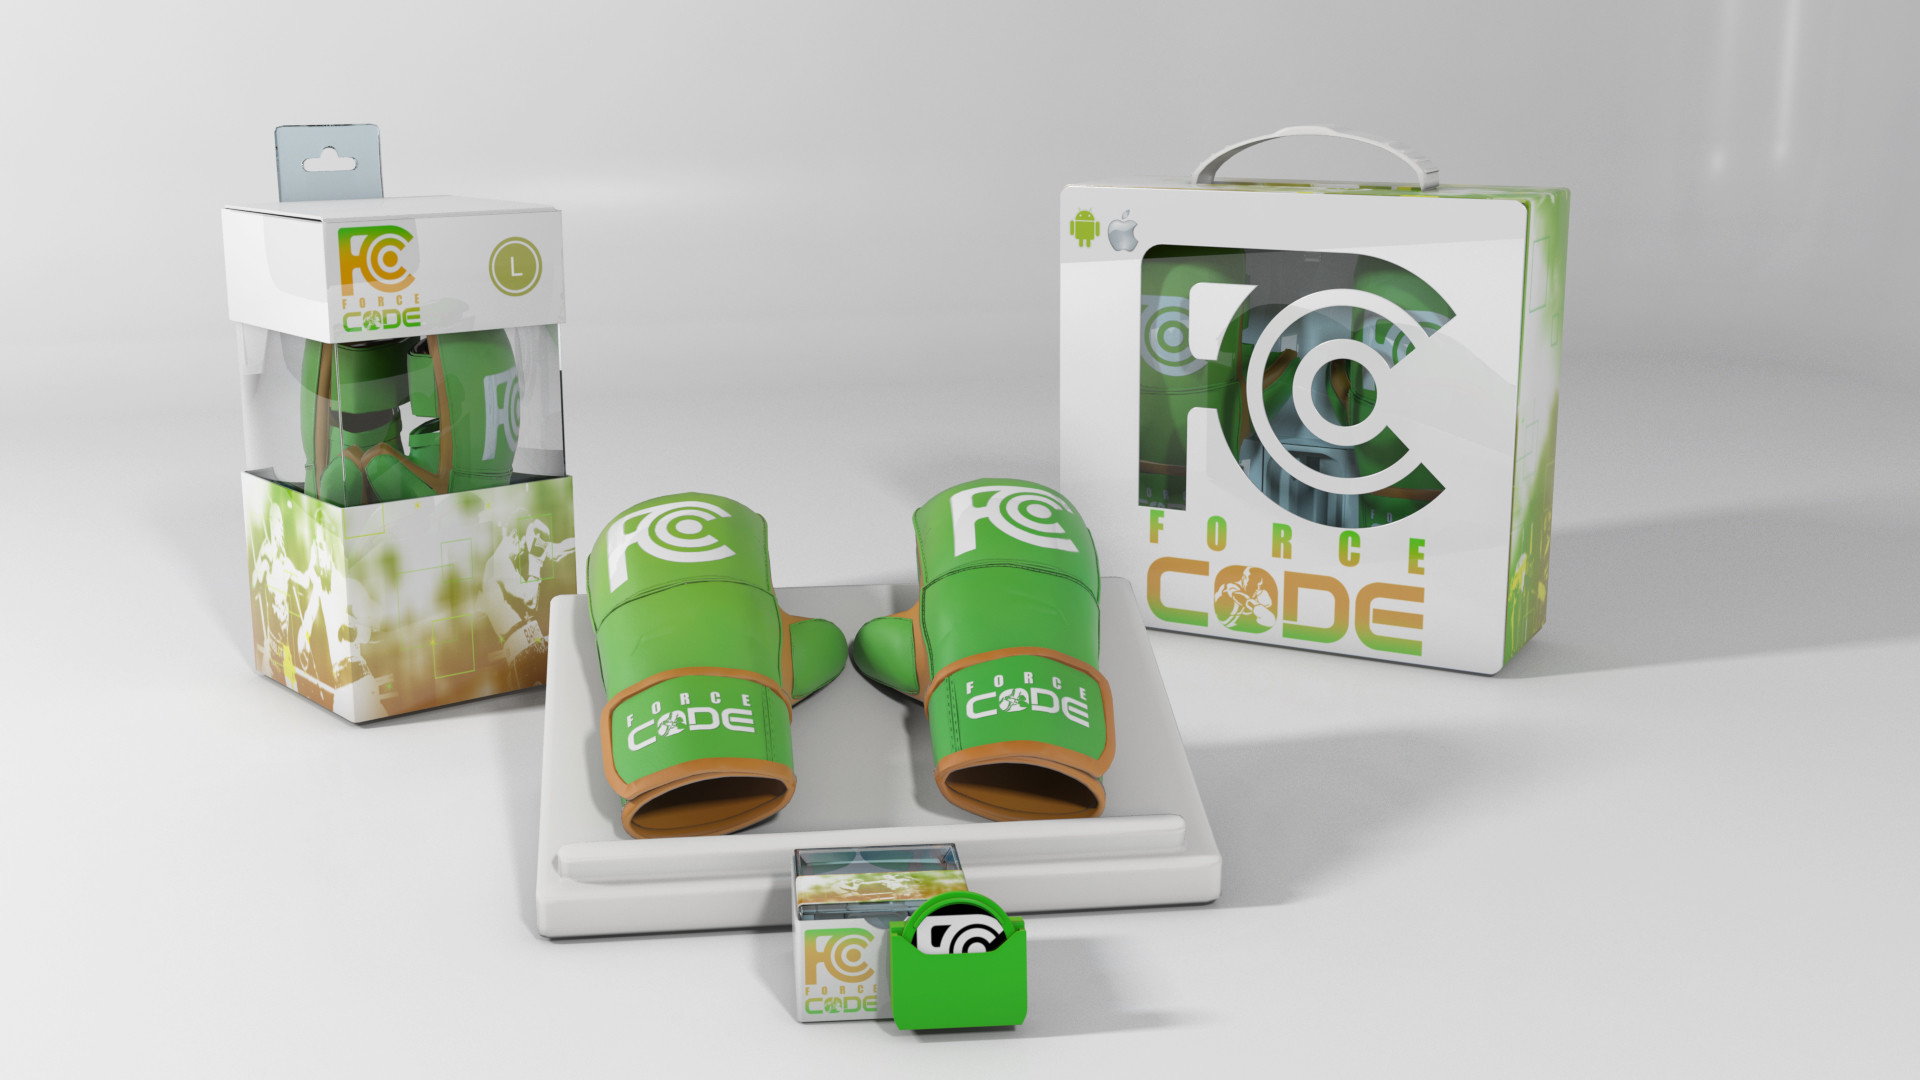 Packaging and Product Option 2